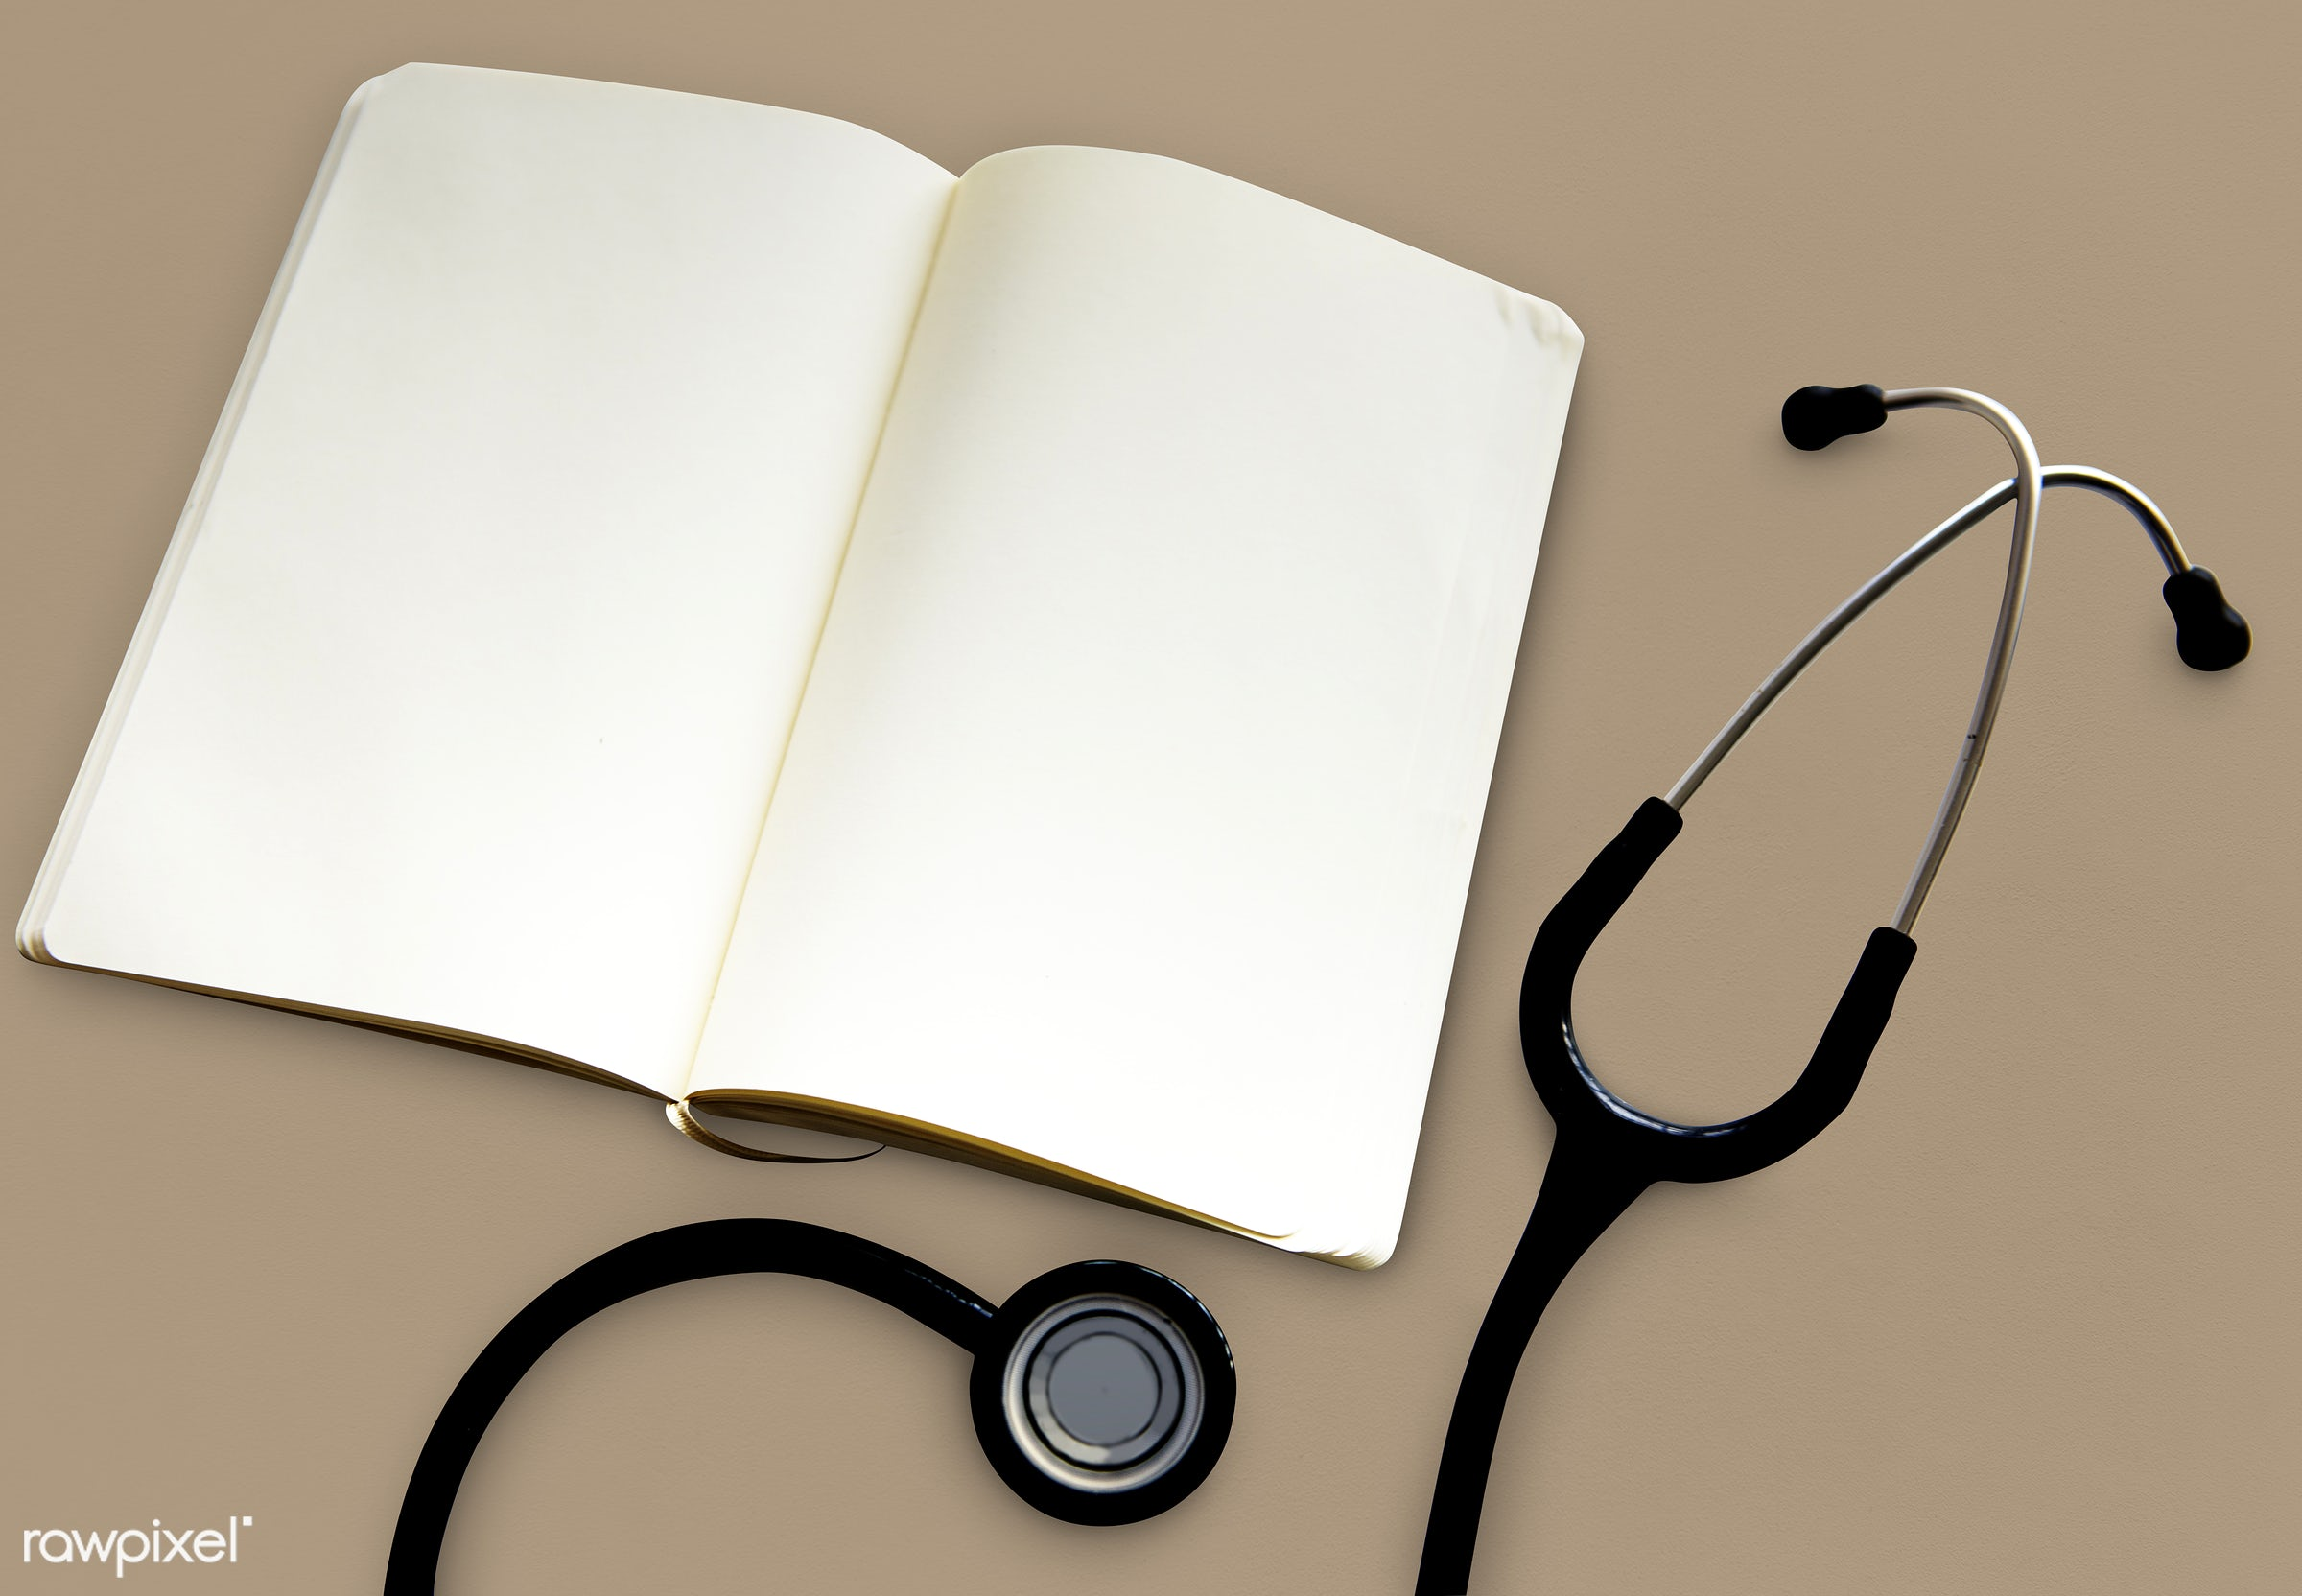 phd, doctorate, profession, disease, physician, doctor, treating, medical, stethoscope, md, nurse, medicine, diagnostic,...